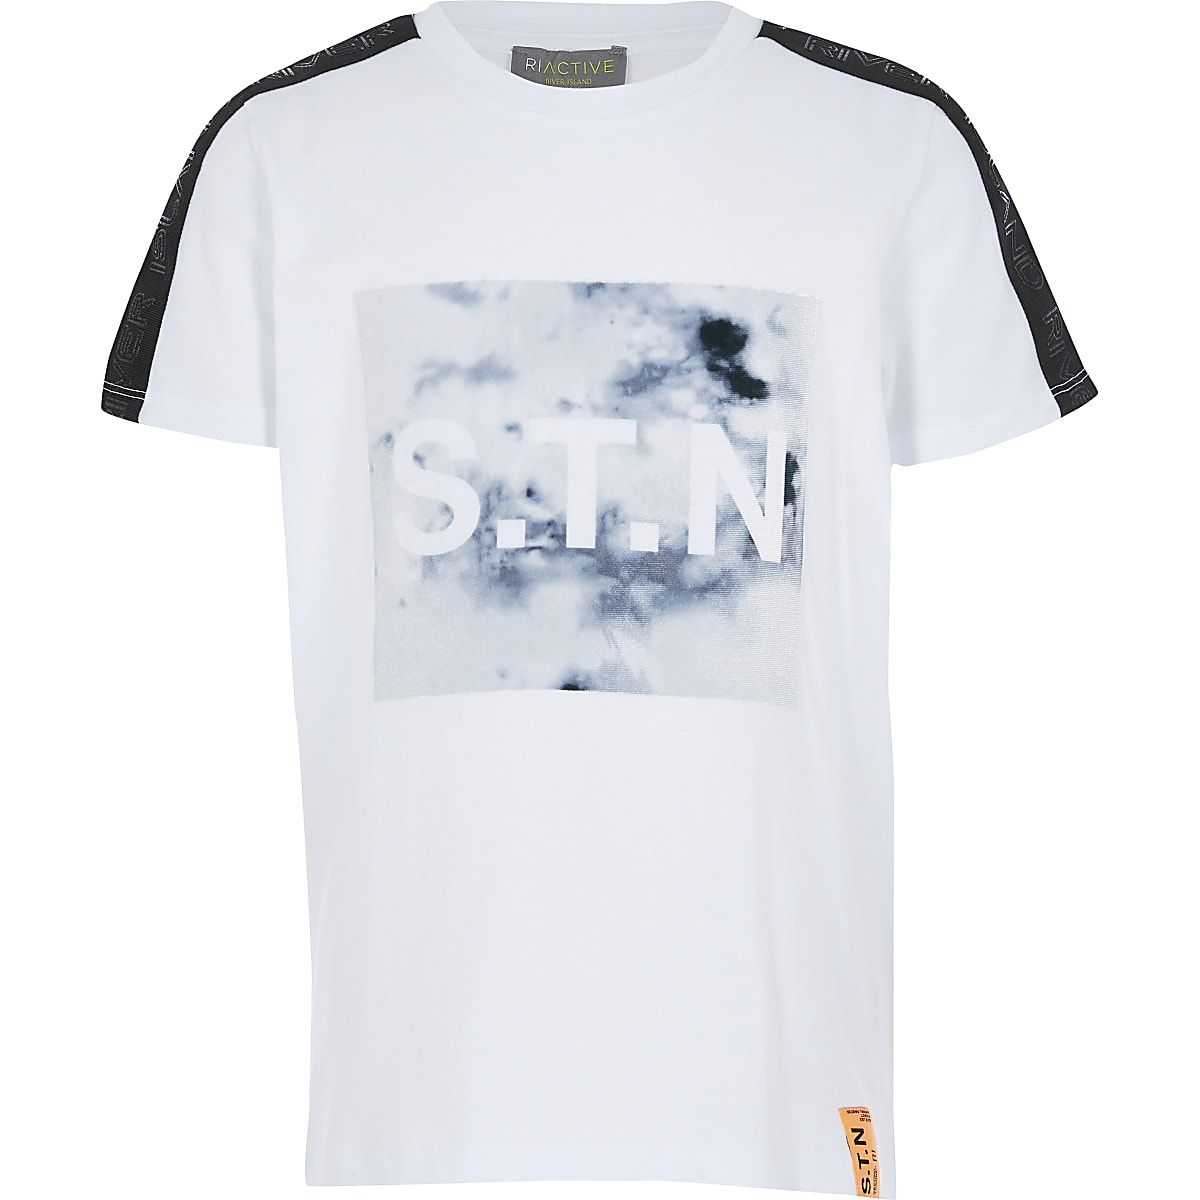 Boys Ri Active white marble T-shirt